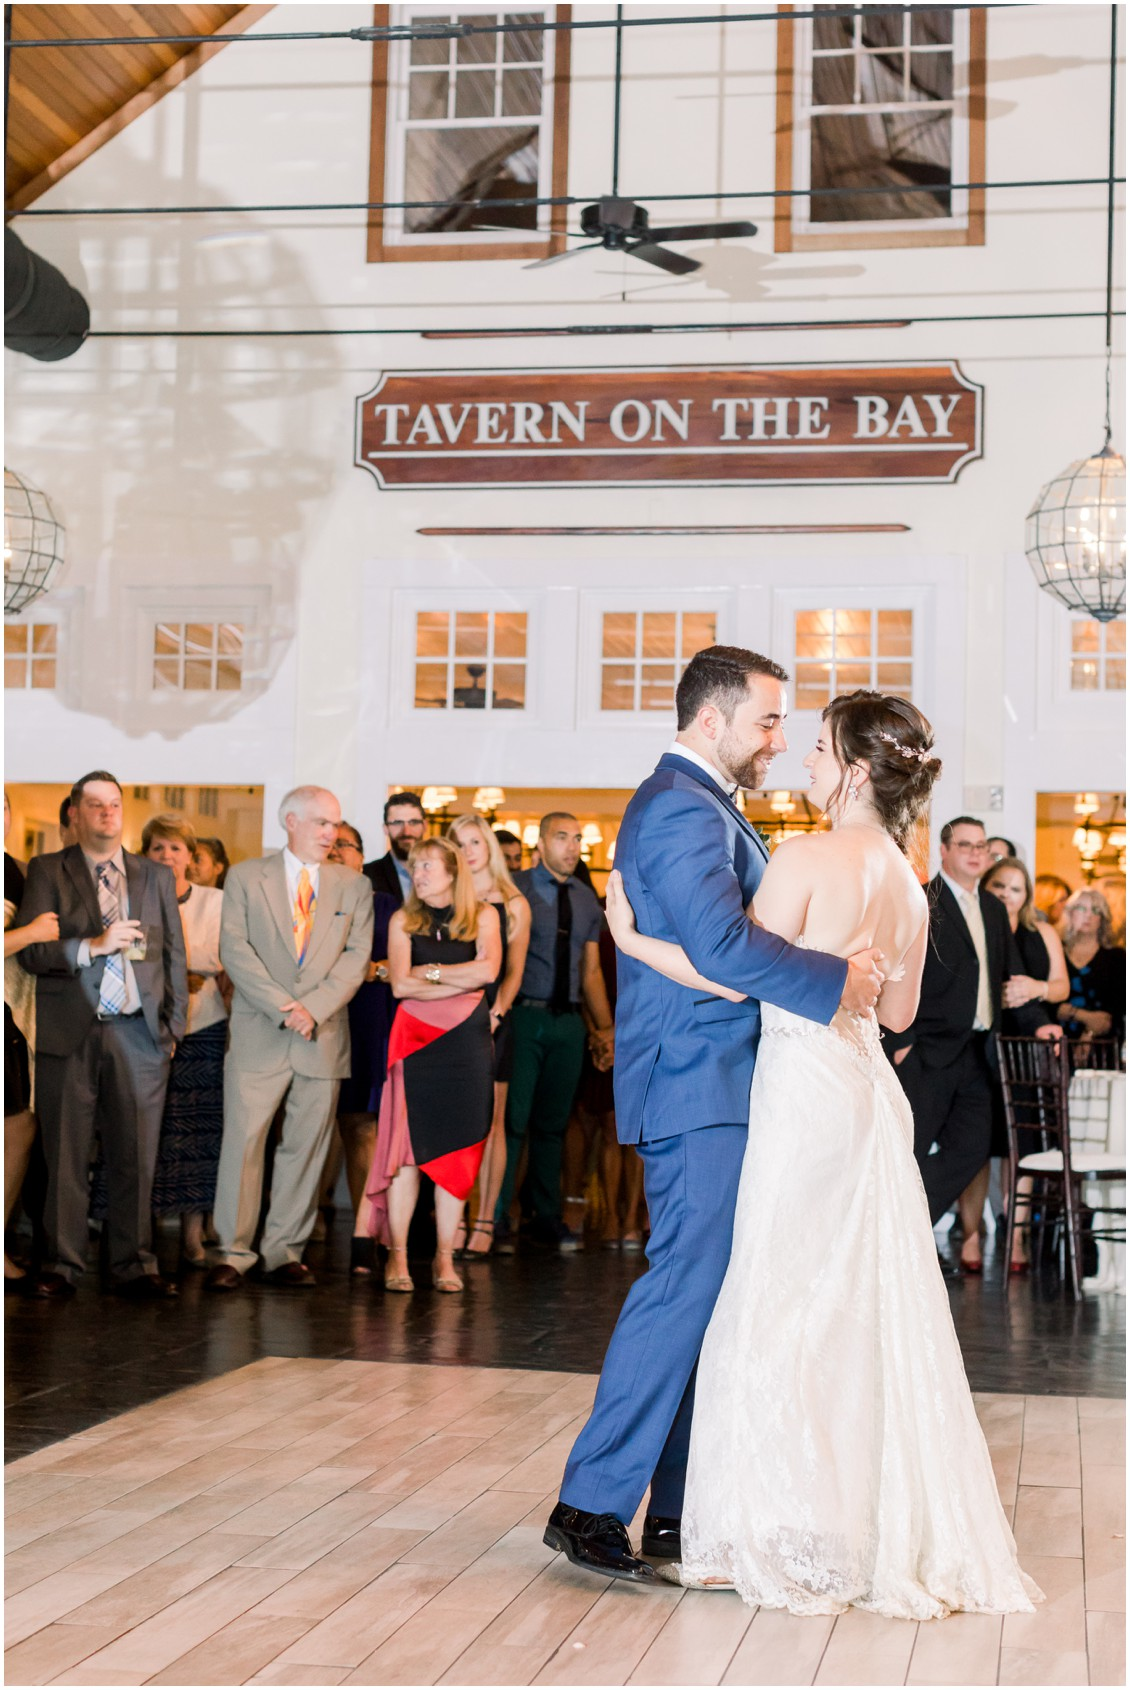 Bride and groom dancing at wedding reception at the Chesapeake Bay Beach Club. | My Eastern Shore Wedding |